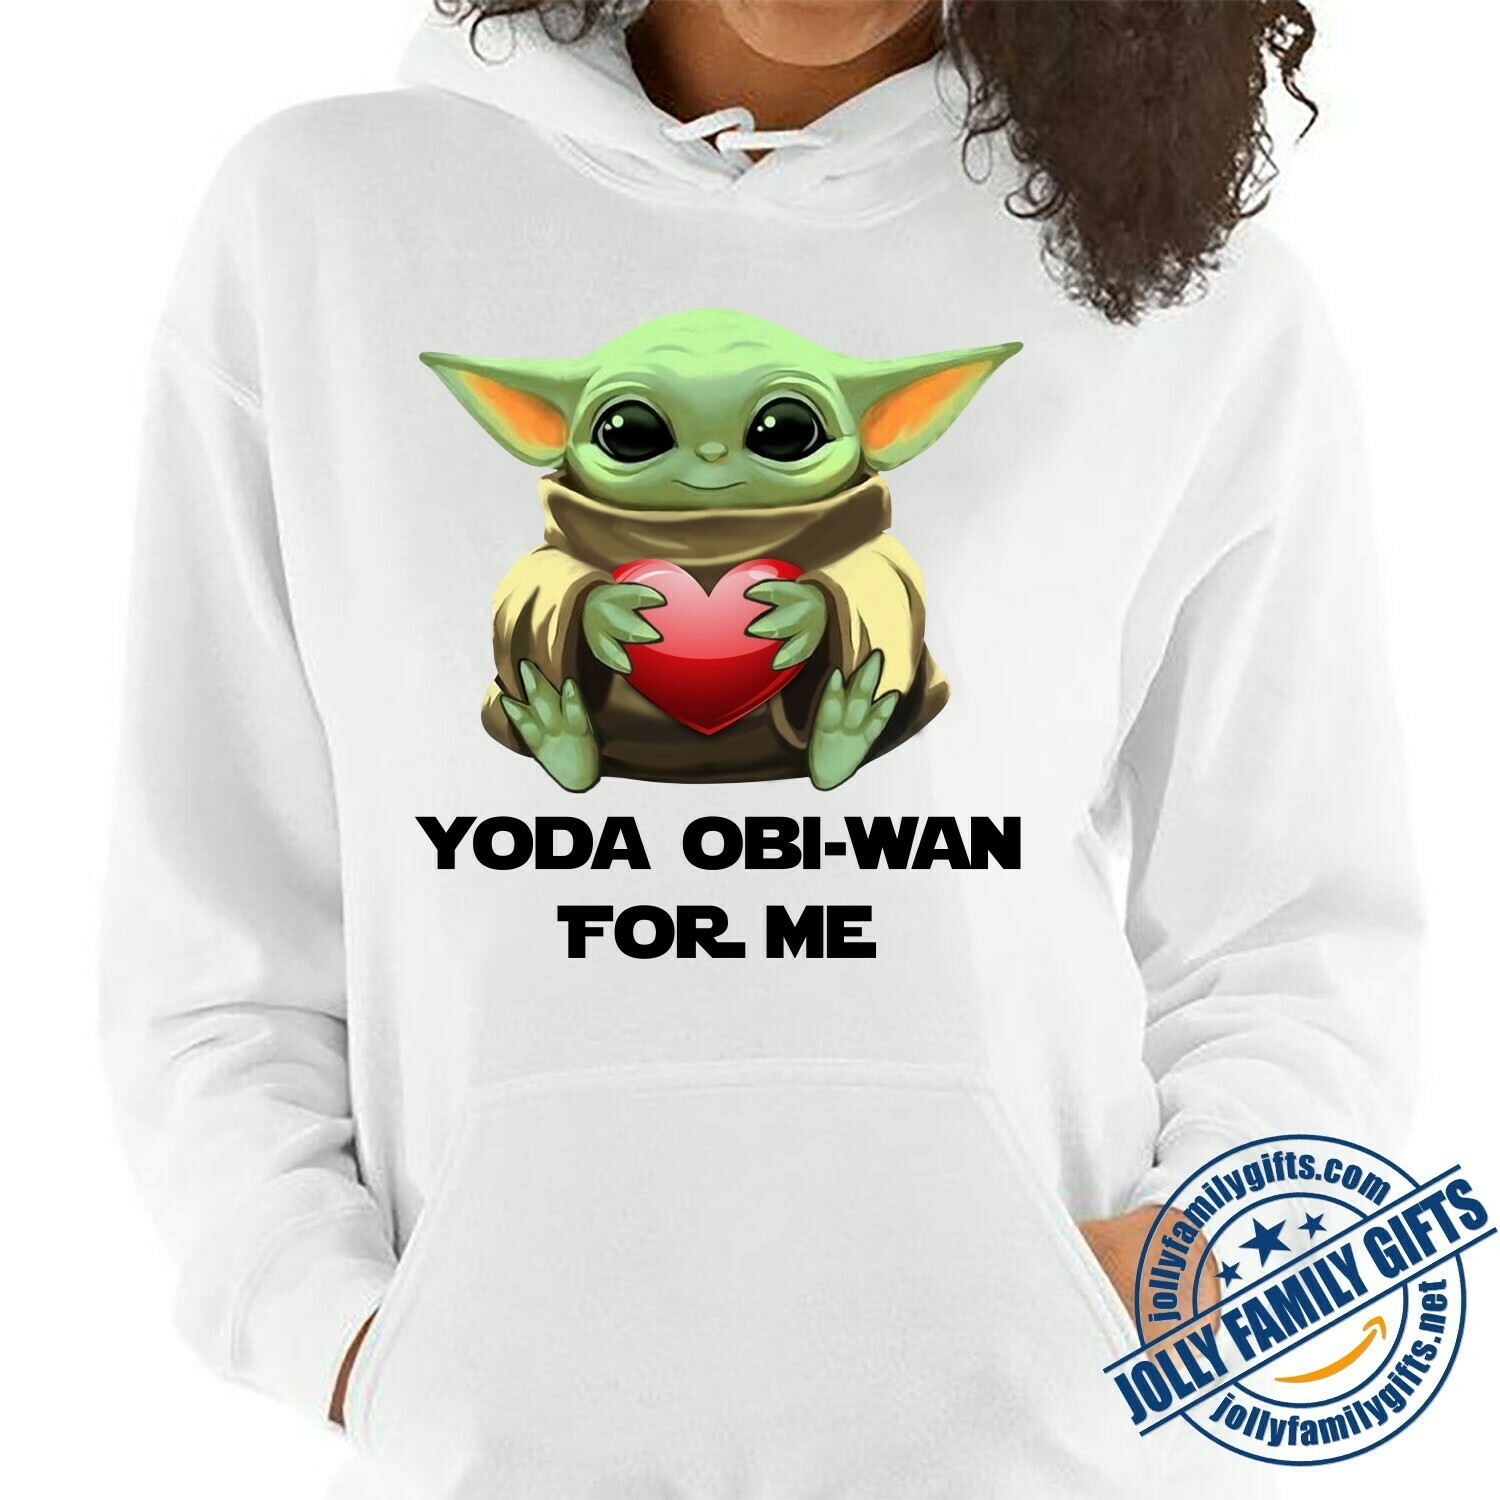 Baby Yoda The Mandalorian with death Star Wars Movie Yoda Obi-Wan for Me,Yoda Hug Heart Valentines Gift for her him girlfriend Unisex T-Shirt Hoodie Sweatshirt Sweater for Ladies Women Men Kids Youth